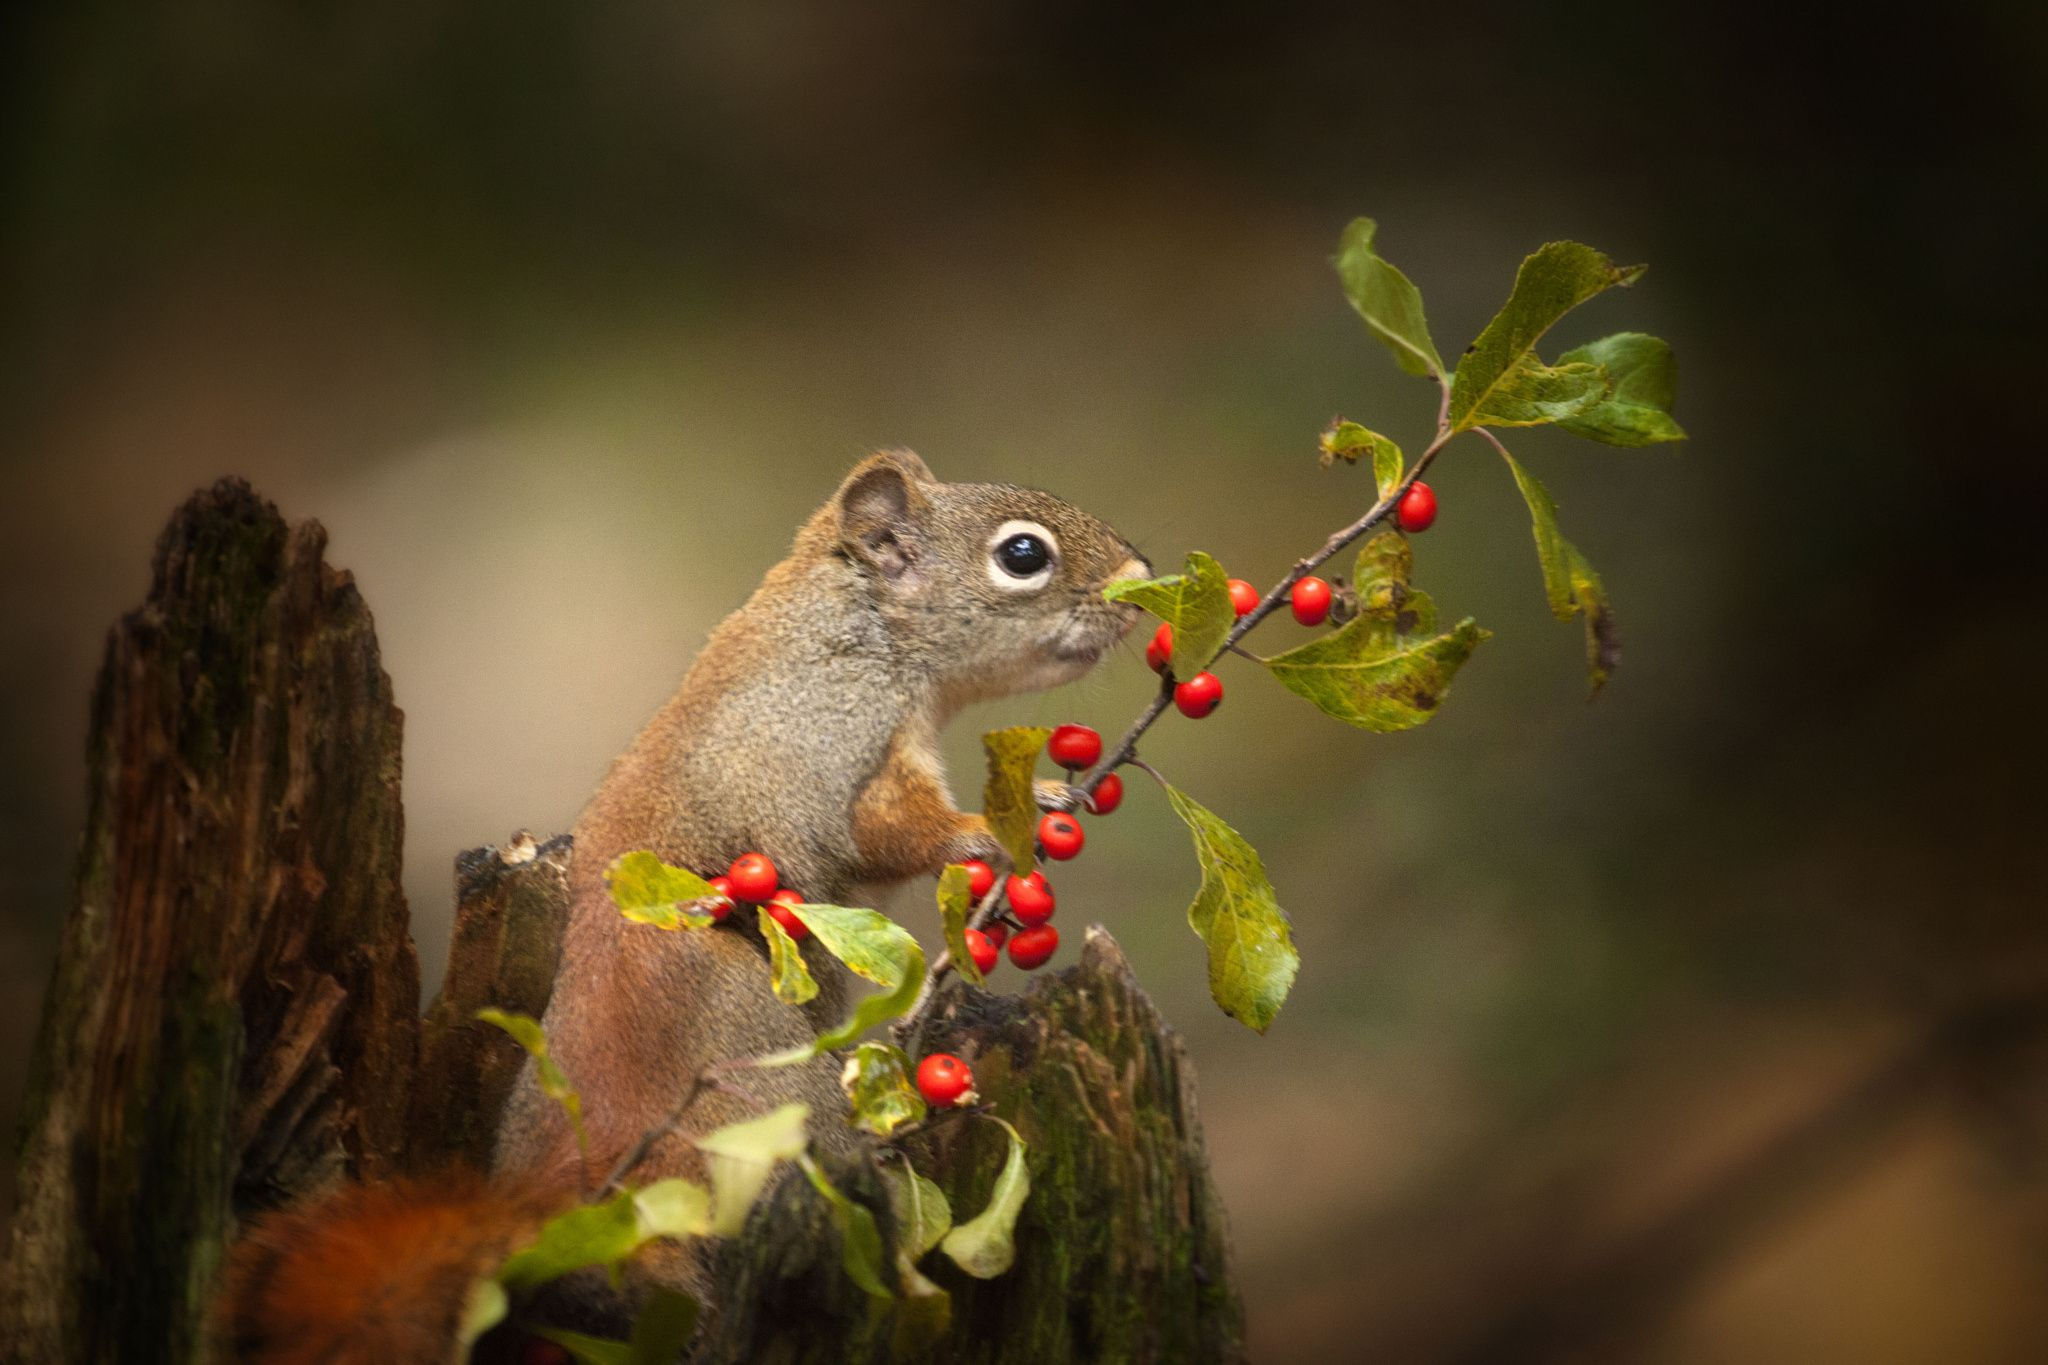 The wildlife by Andre Villeneuve on 500px